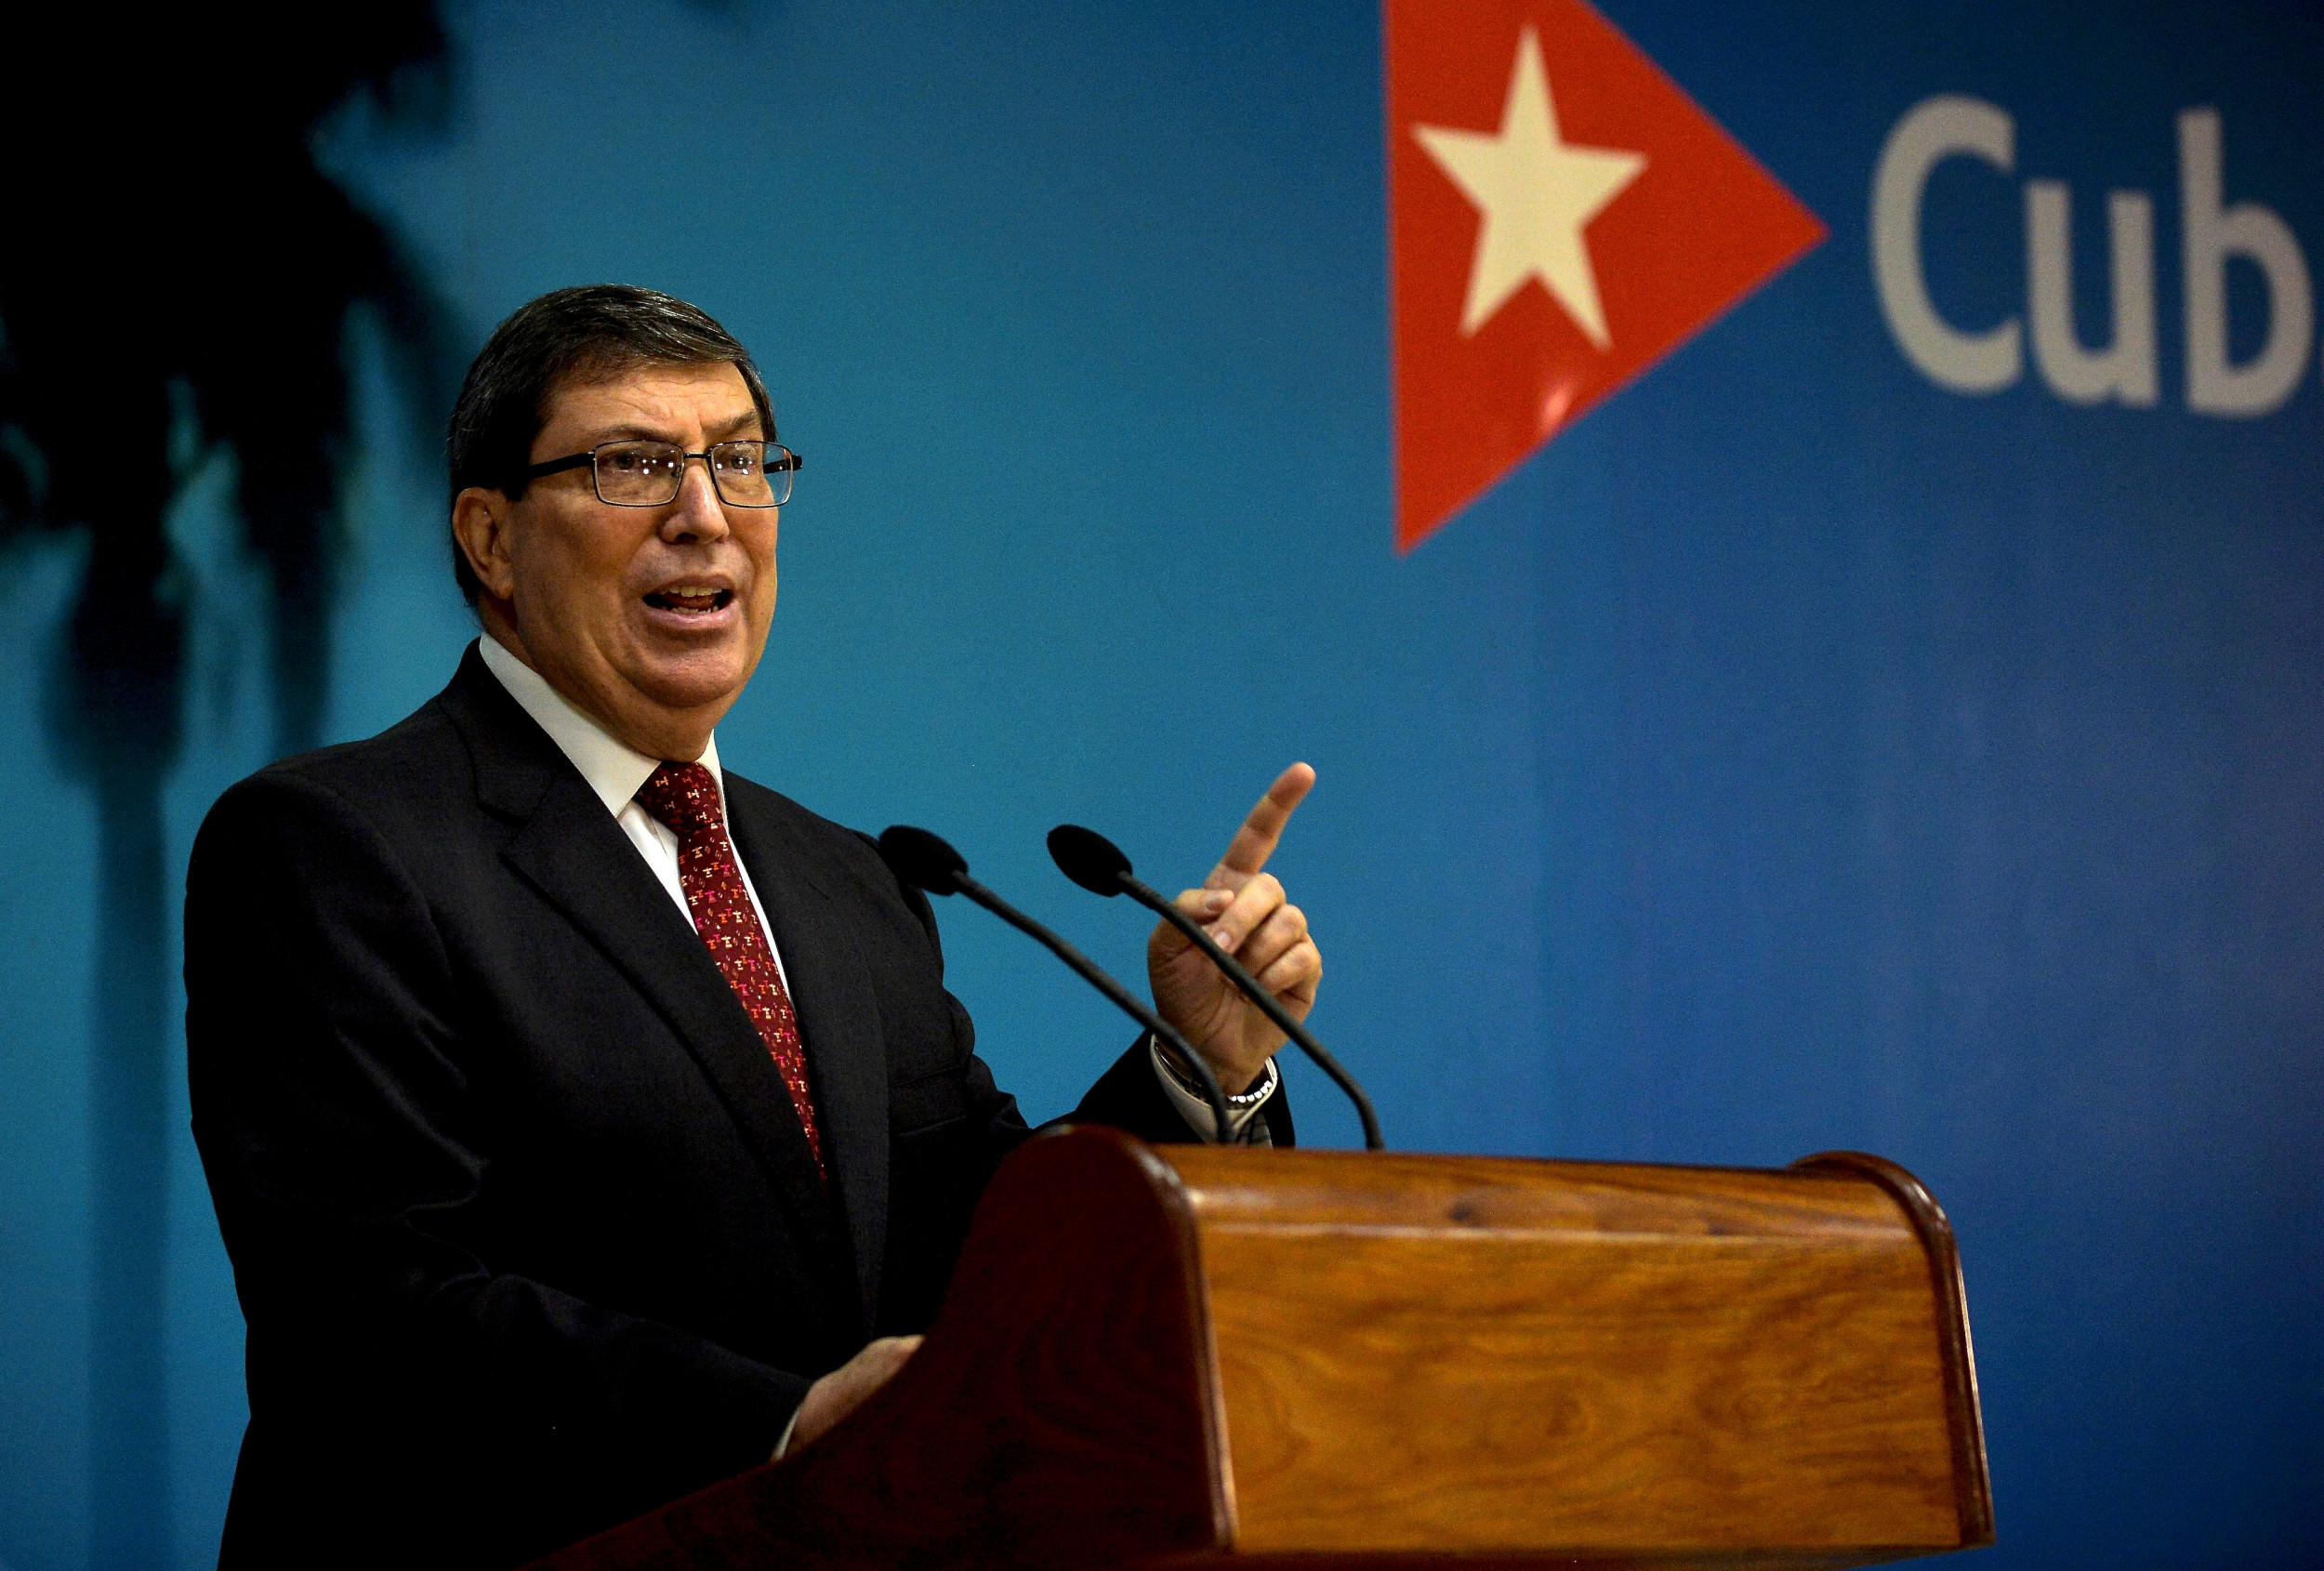 Cuba's Foreign Minister Blames U.S. After Paris Embassy Attacked